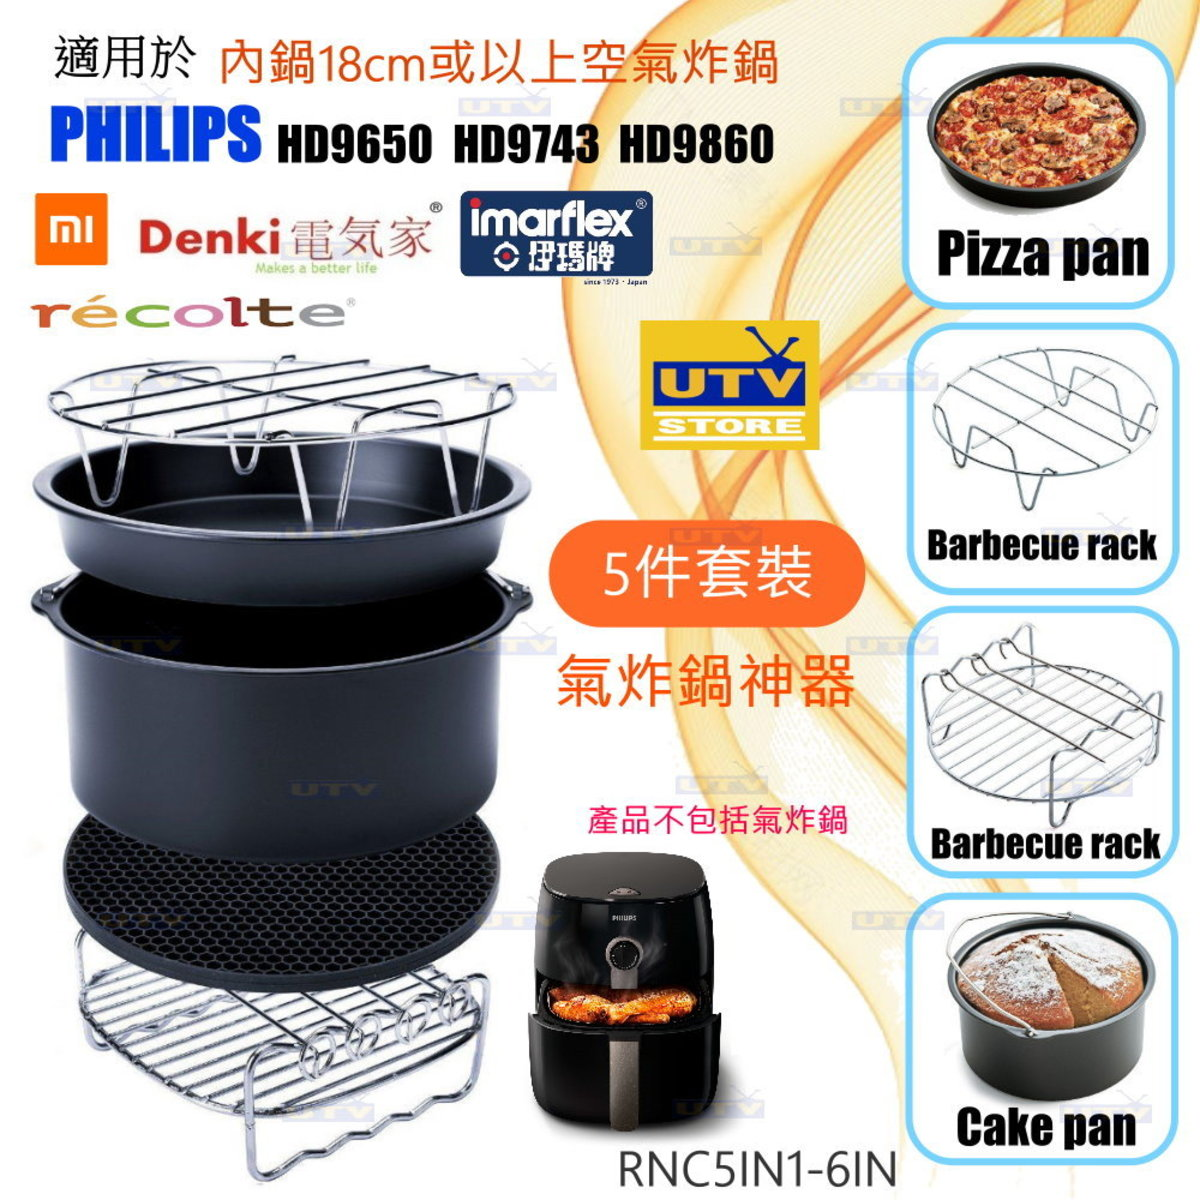 Five-piece set of air fryer accessories (6 inch) RNC5IN1